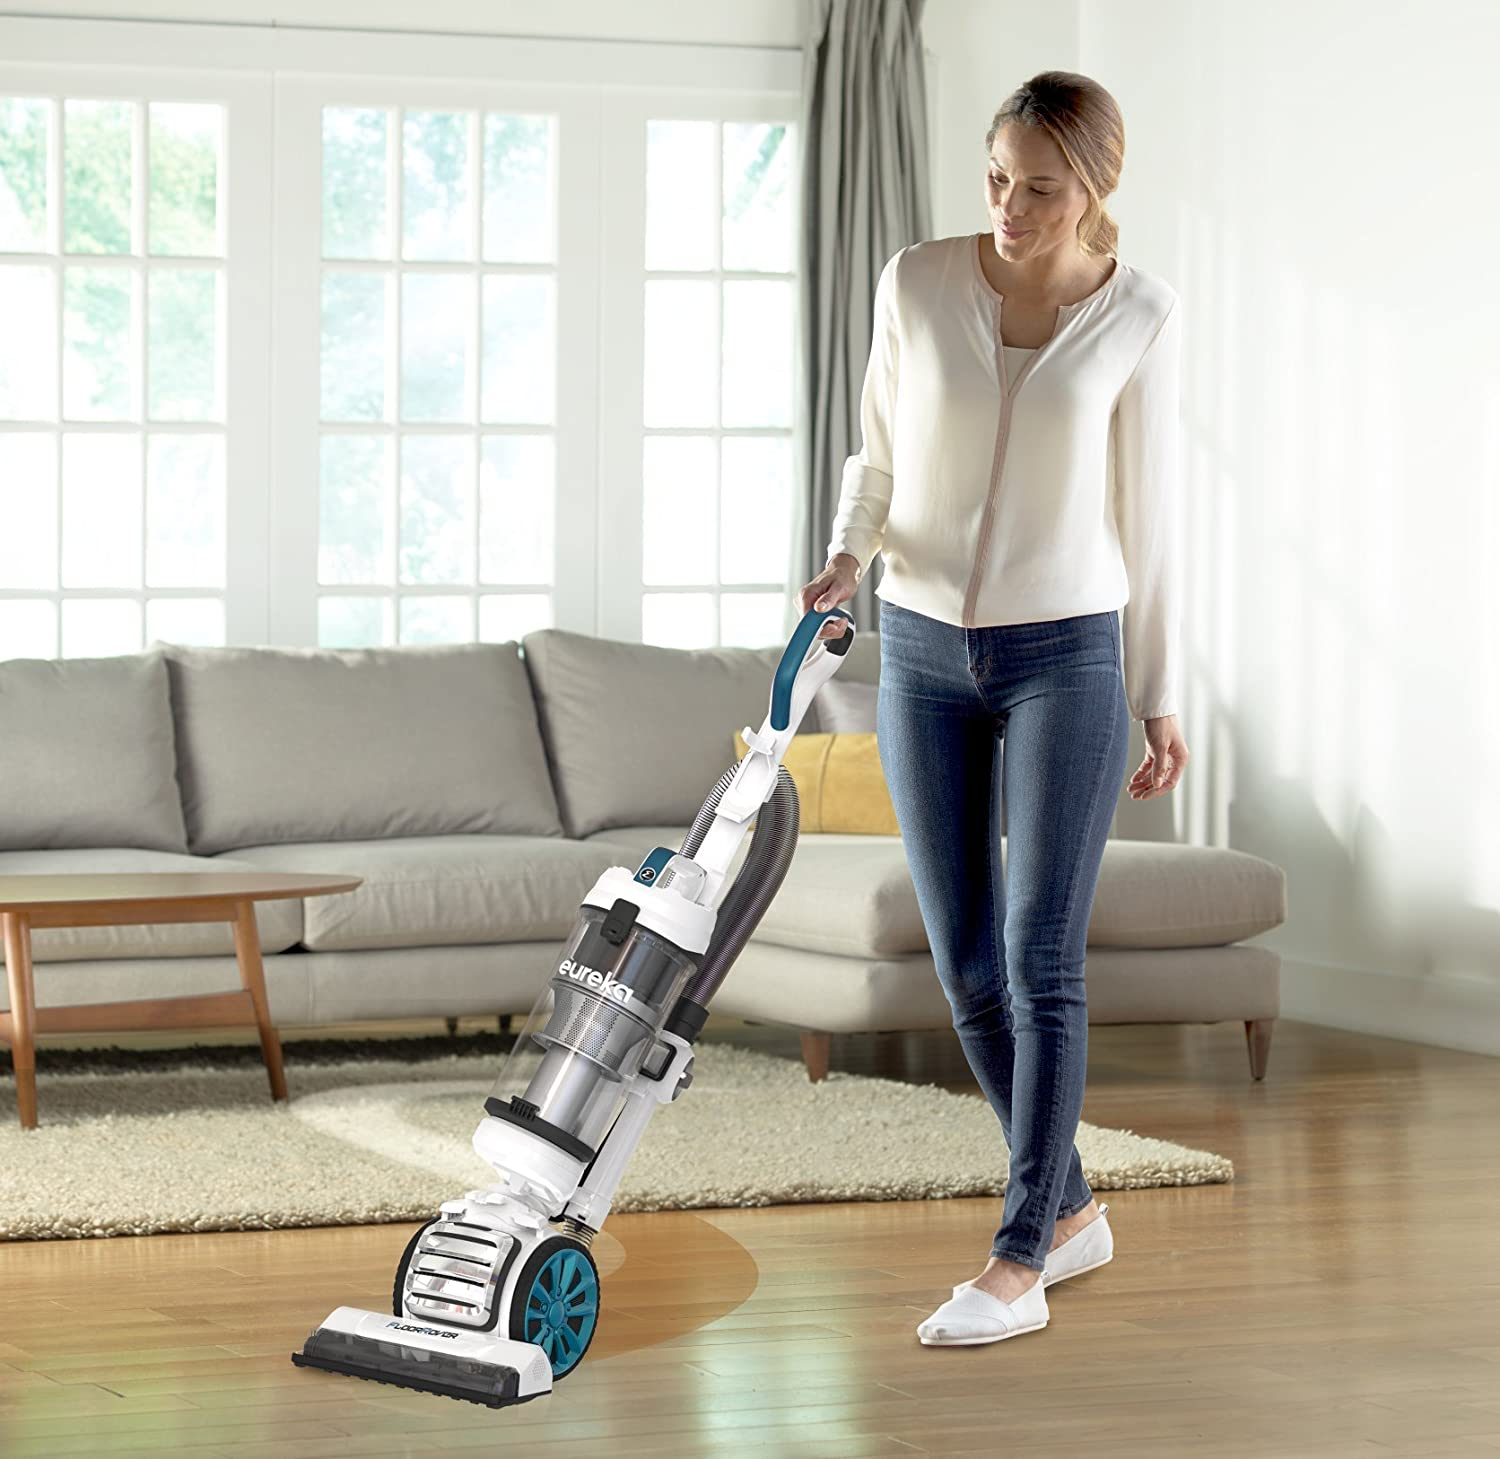 The 10 Best Vacuum Cleaners In 2018: Sharp, Compact And Quiet 22